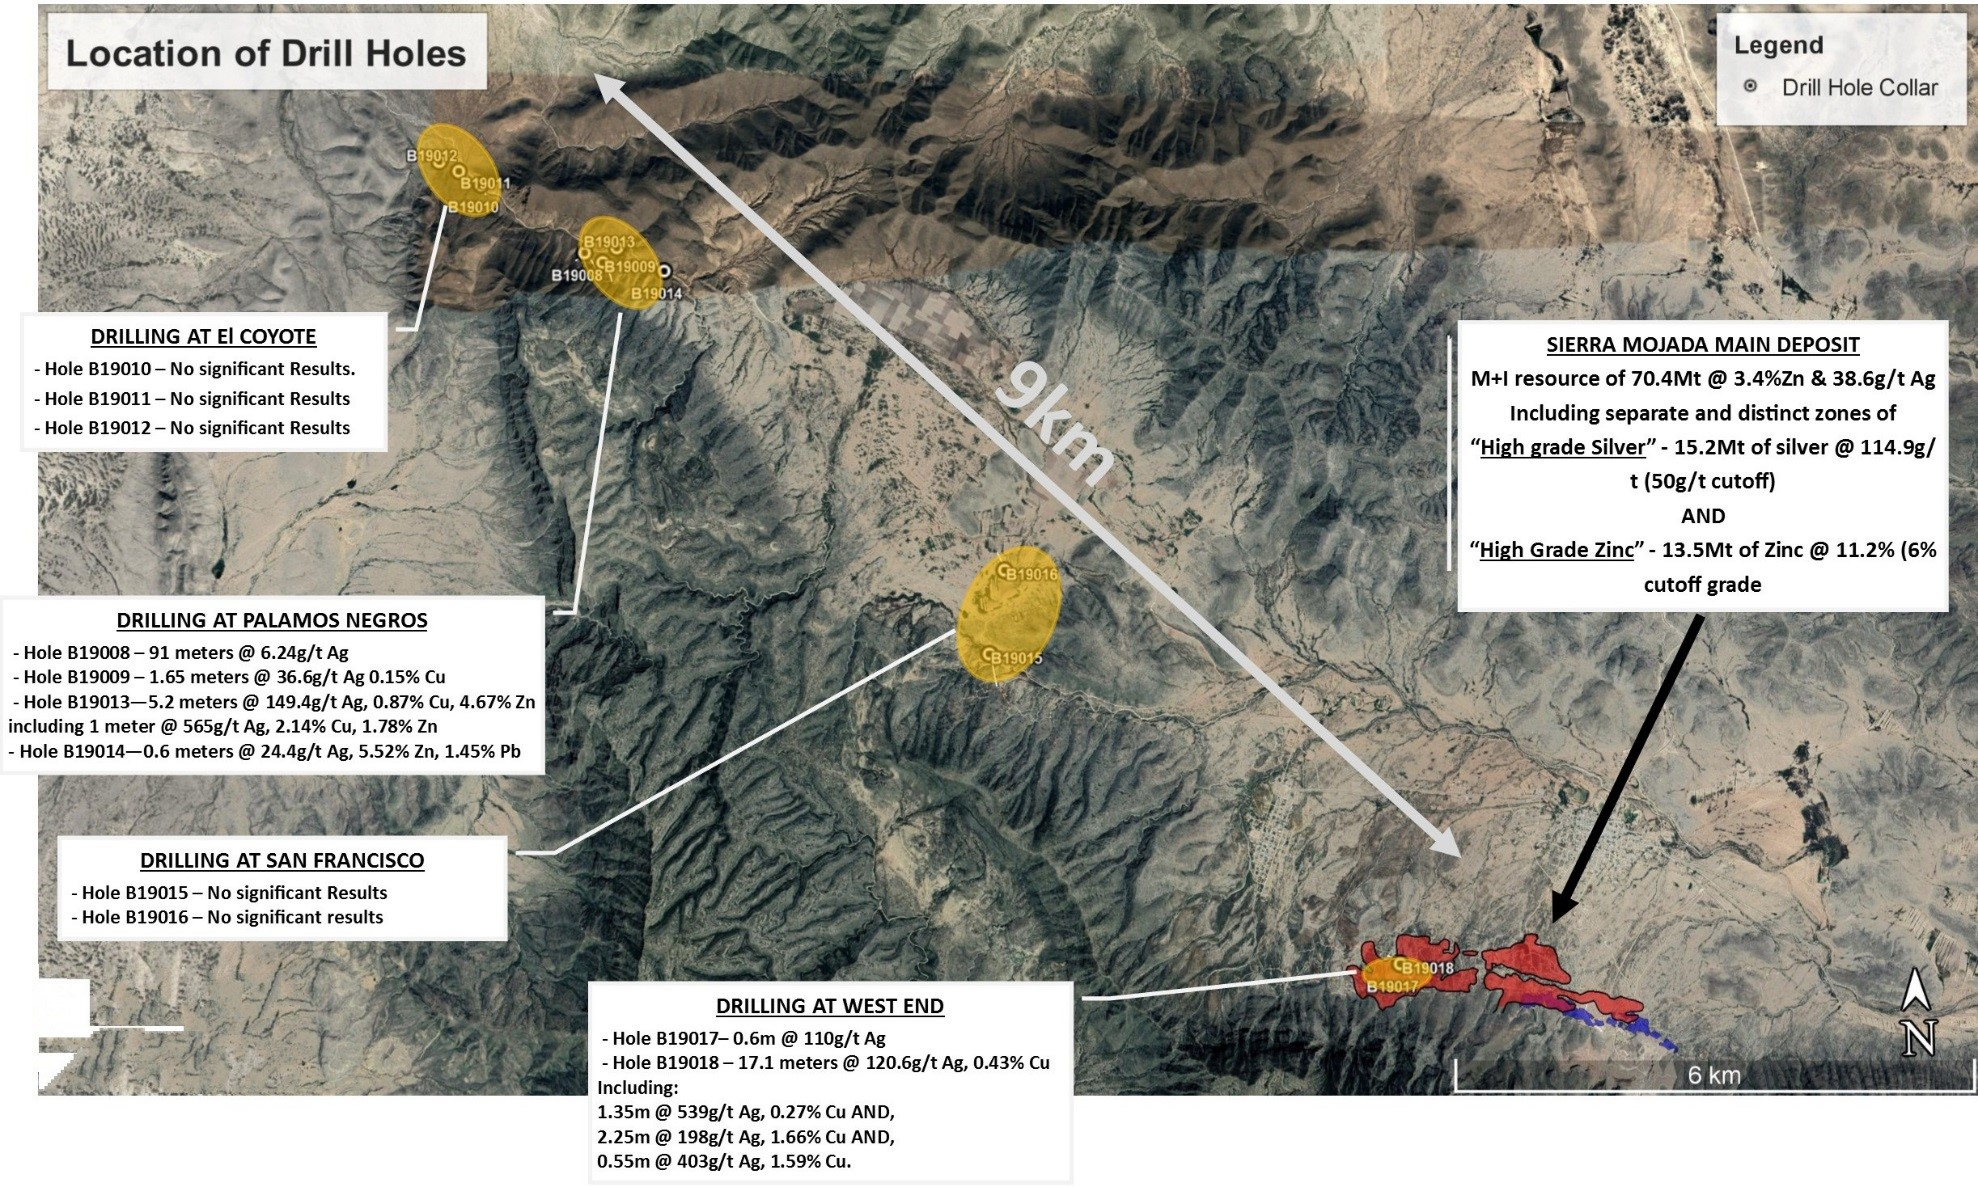 Silver Bull Intercepts 17.1 Meters of Mineralization Grading 120g/t Silver and 0.43% Copper, Including 2.25 Meters Grading 198g/t Silver and 1